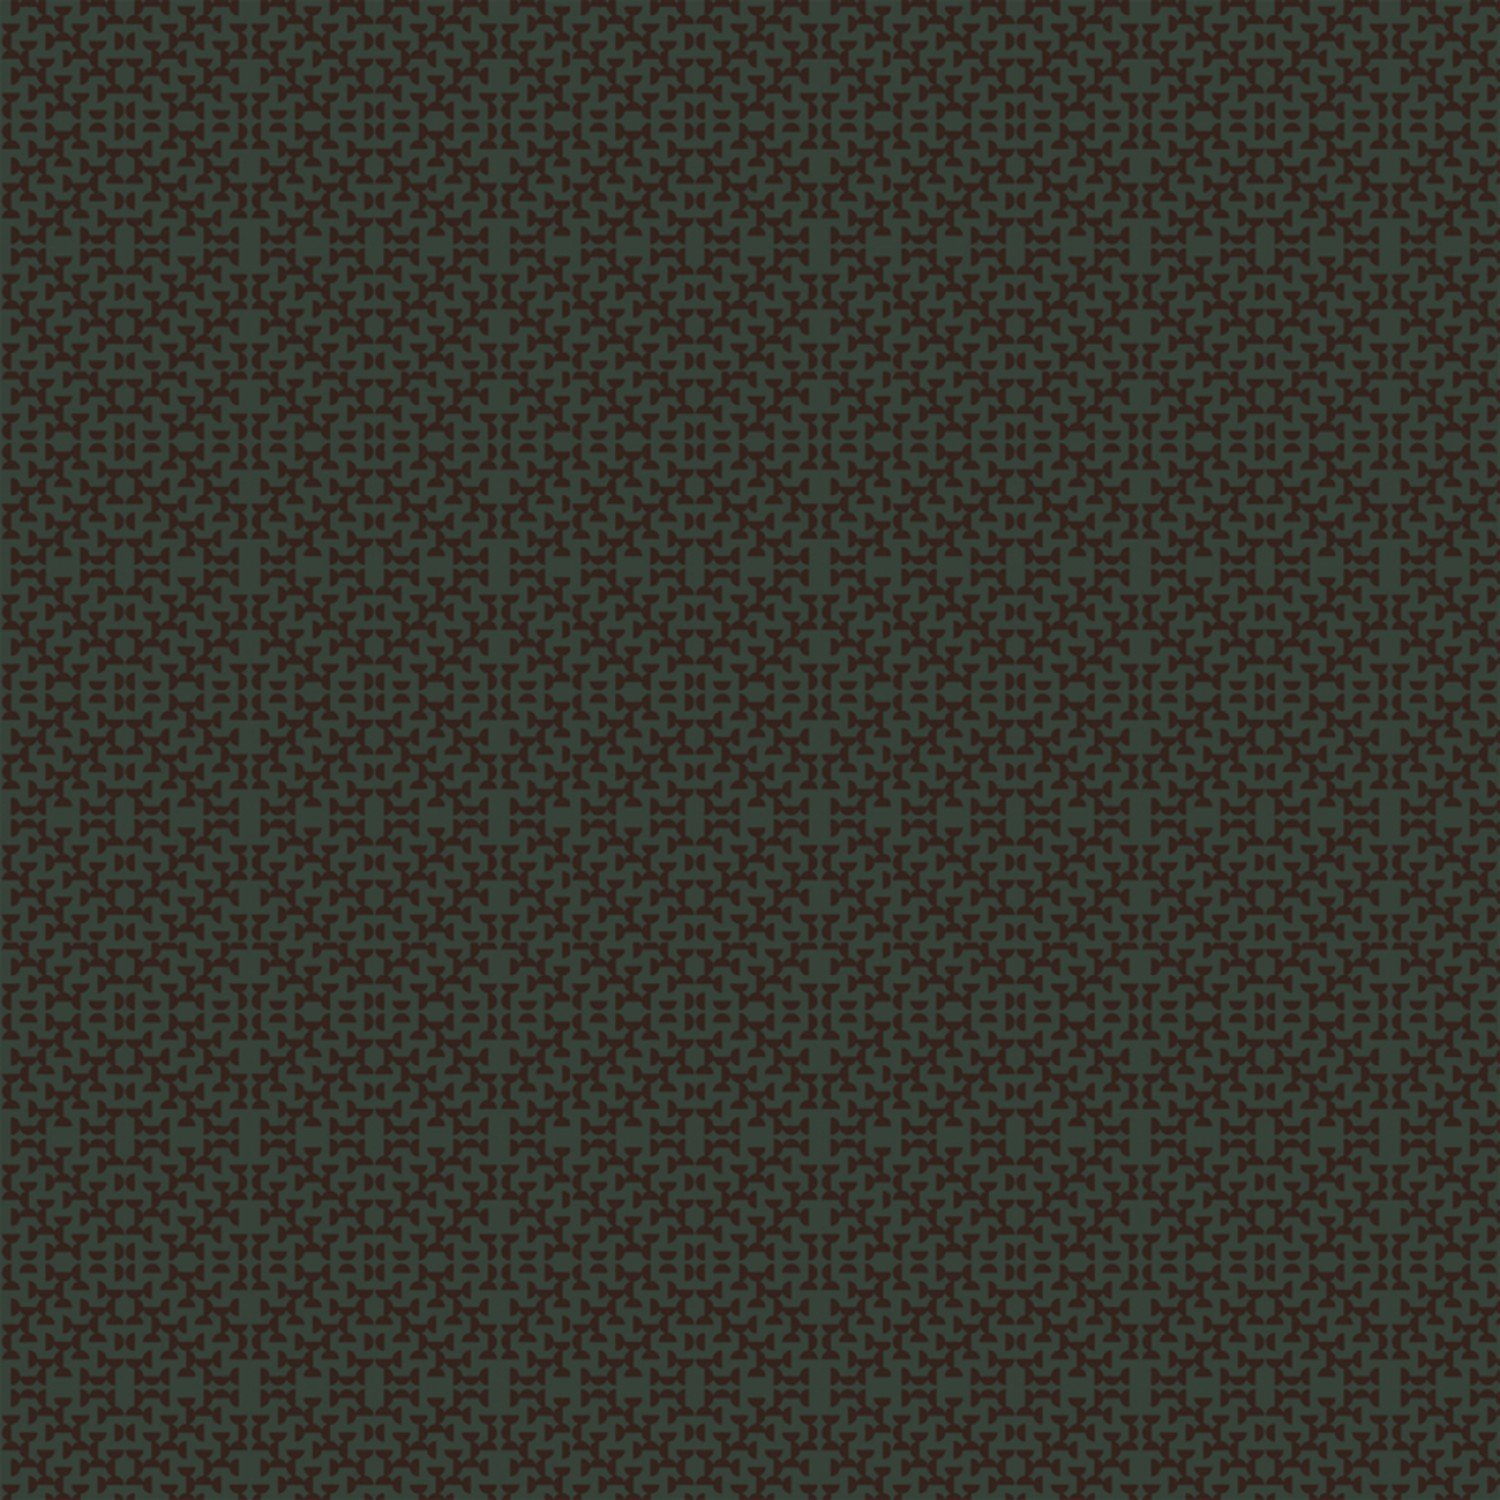 51576 5 Moss Diamonds Pottery by Dale Allen-Rowse for Windham Fabrics. 100% cotton 43 wide